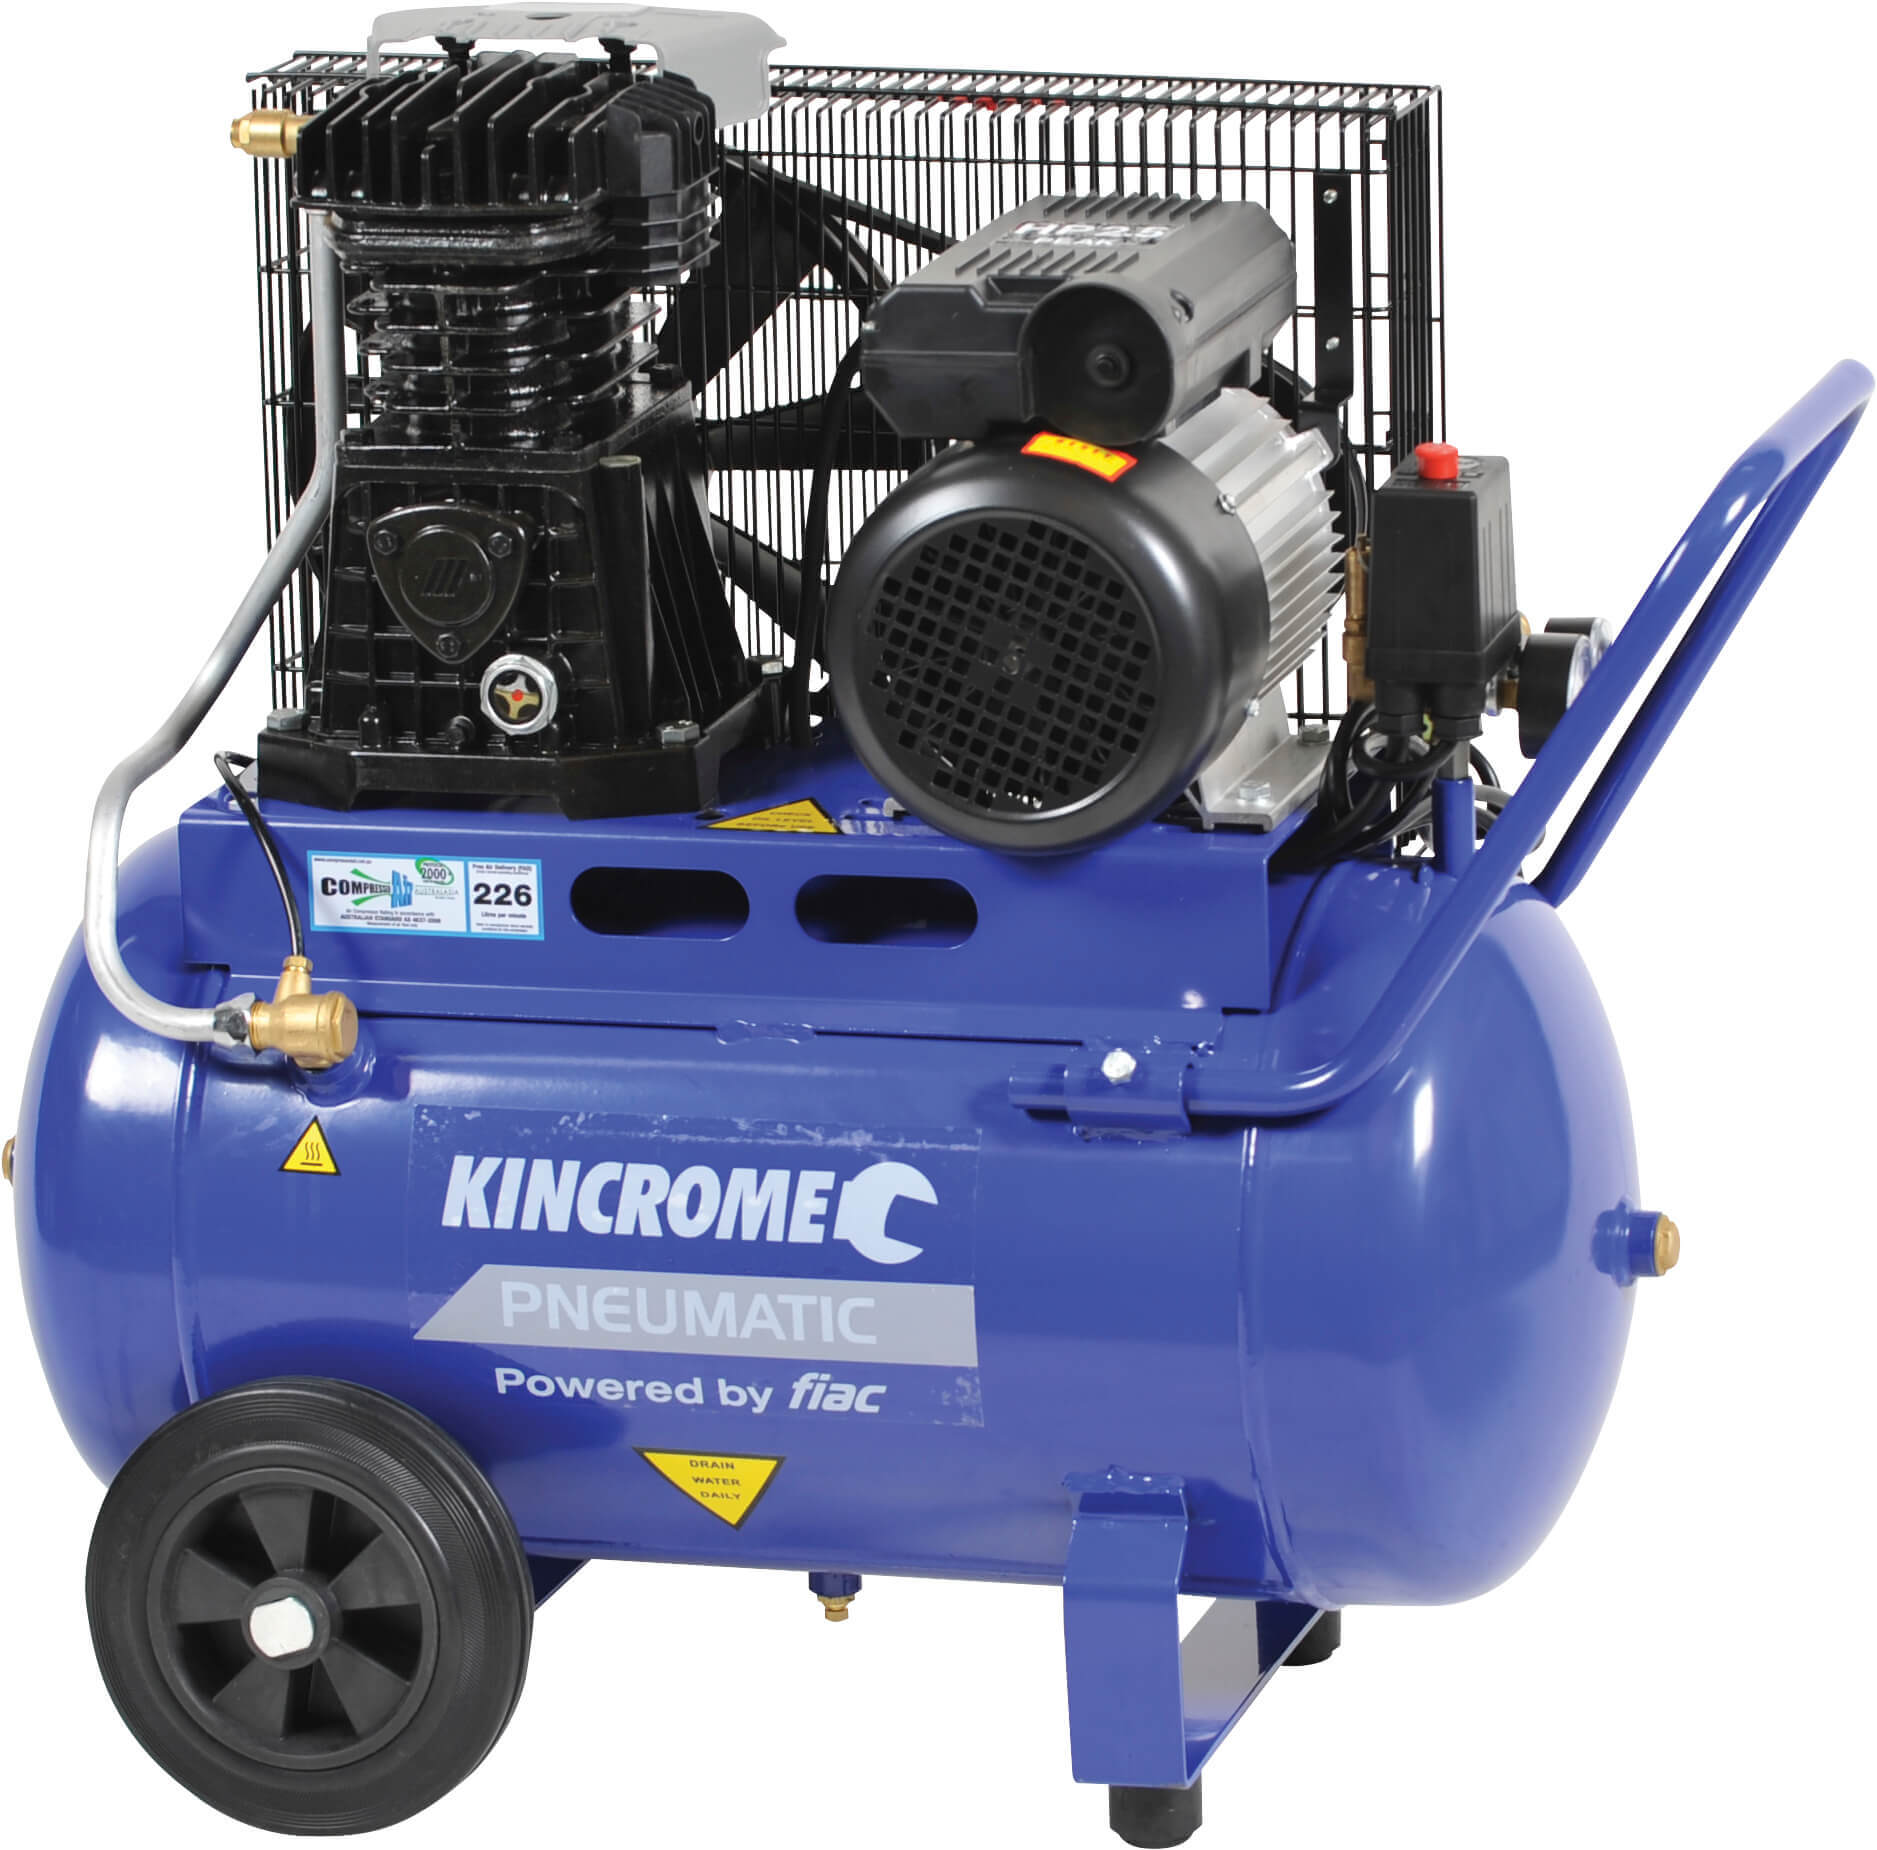 kincrome-product2.jpg